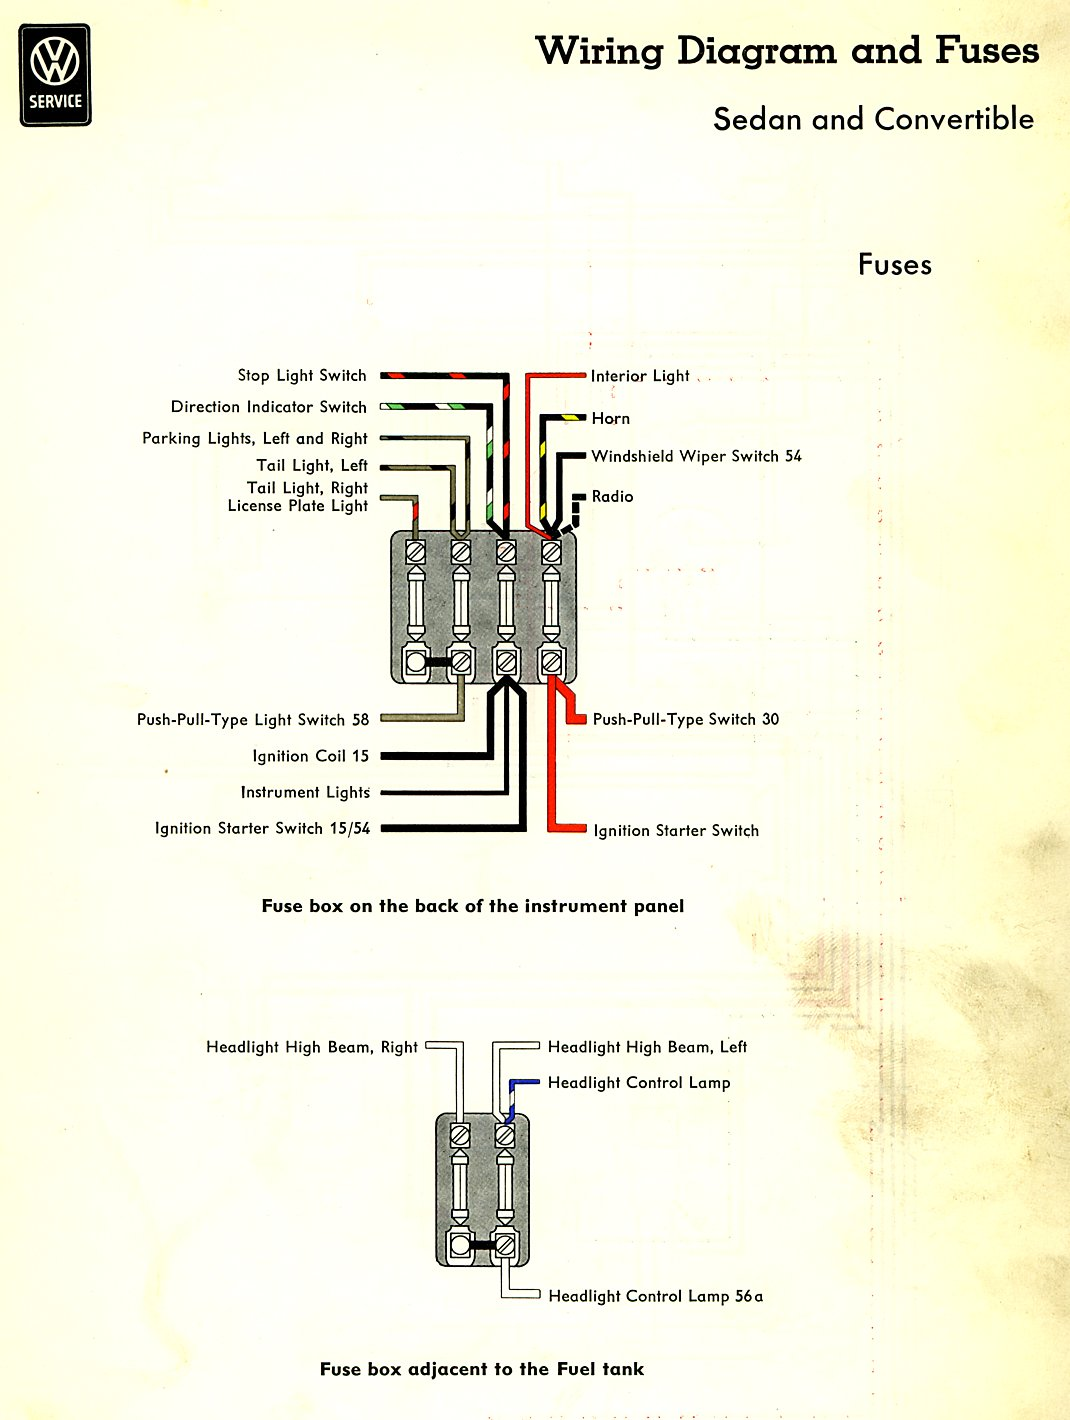 1973 Vw Ignition Switch Wiring Diagram | Wiring Diagram Headlight Switch Wiring Diagram Vw Bug on